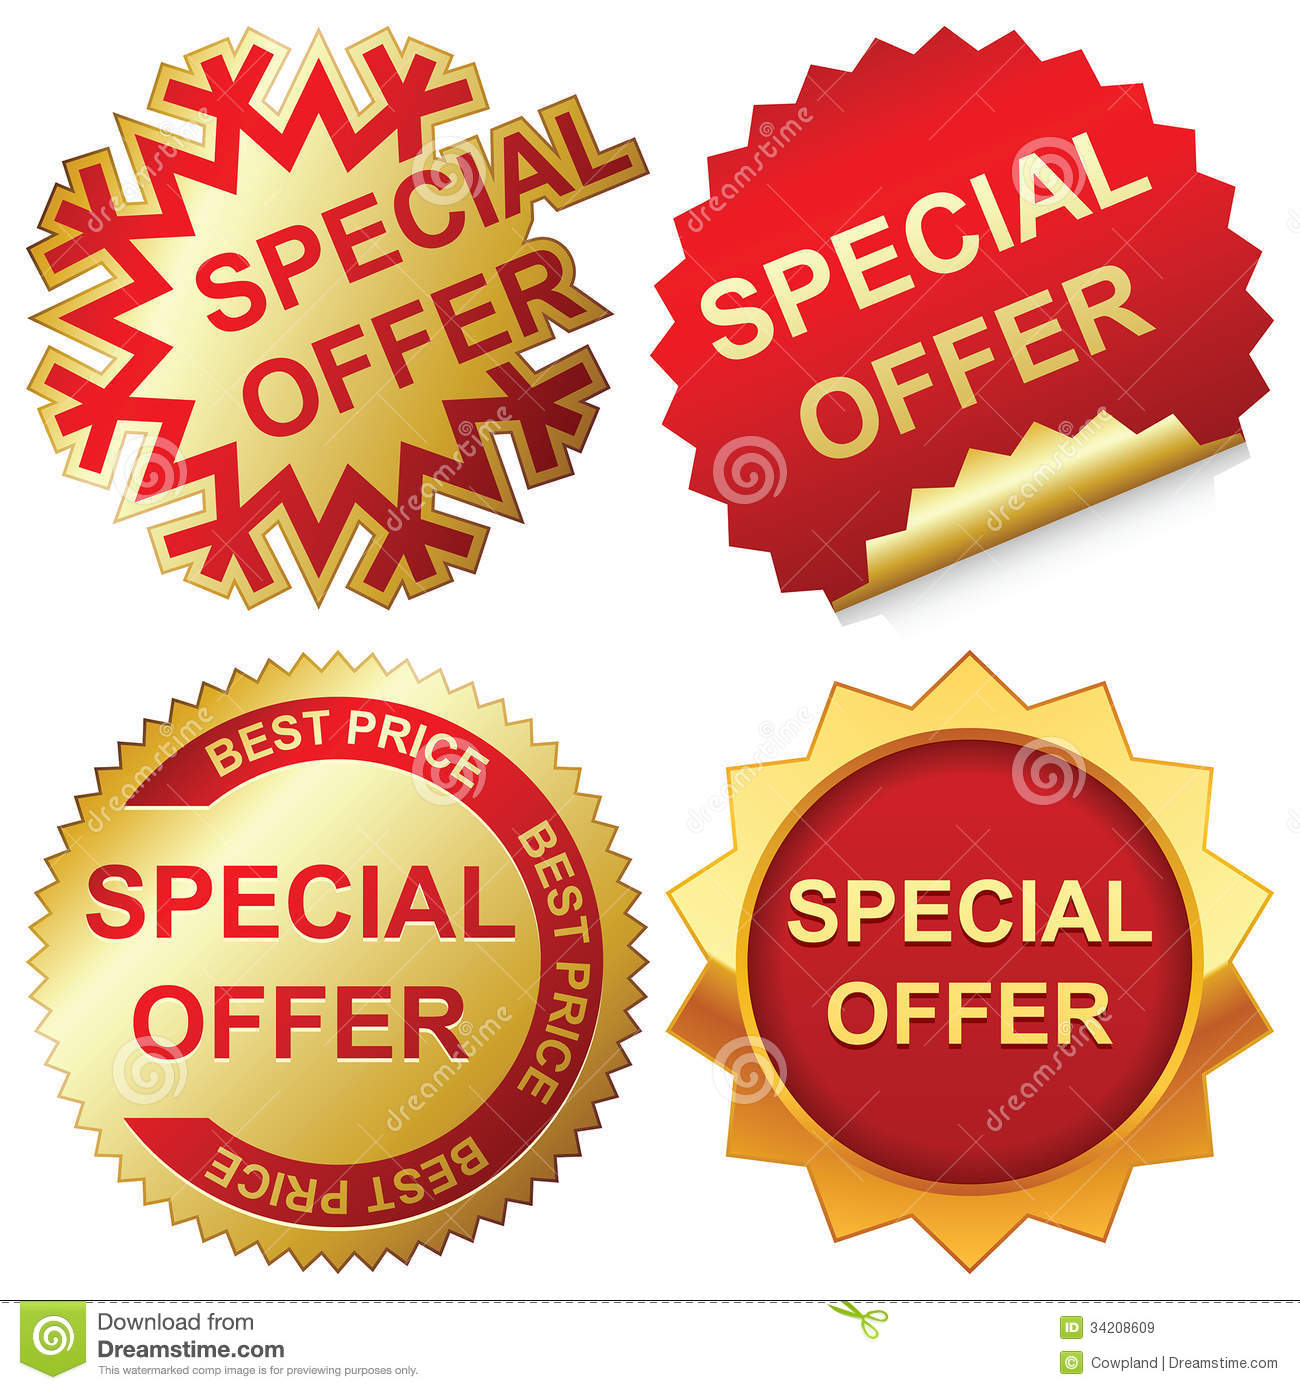 Offer: Special Offer Royalty Free Stock Images